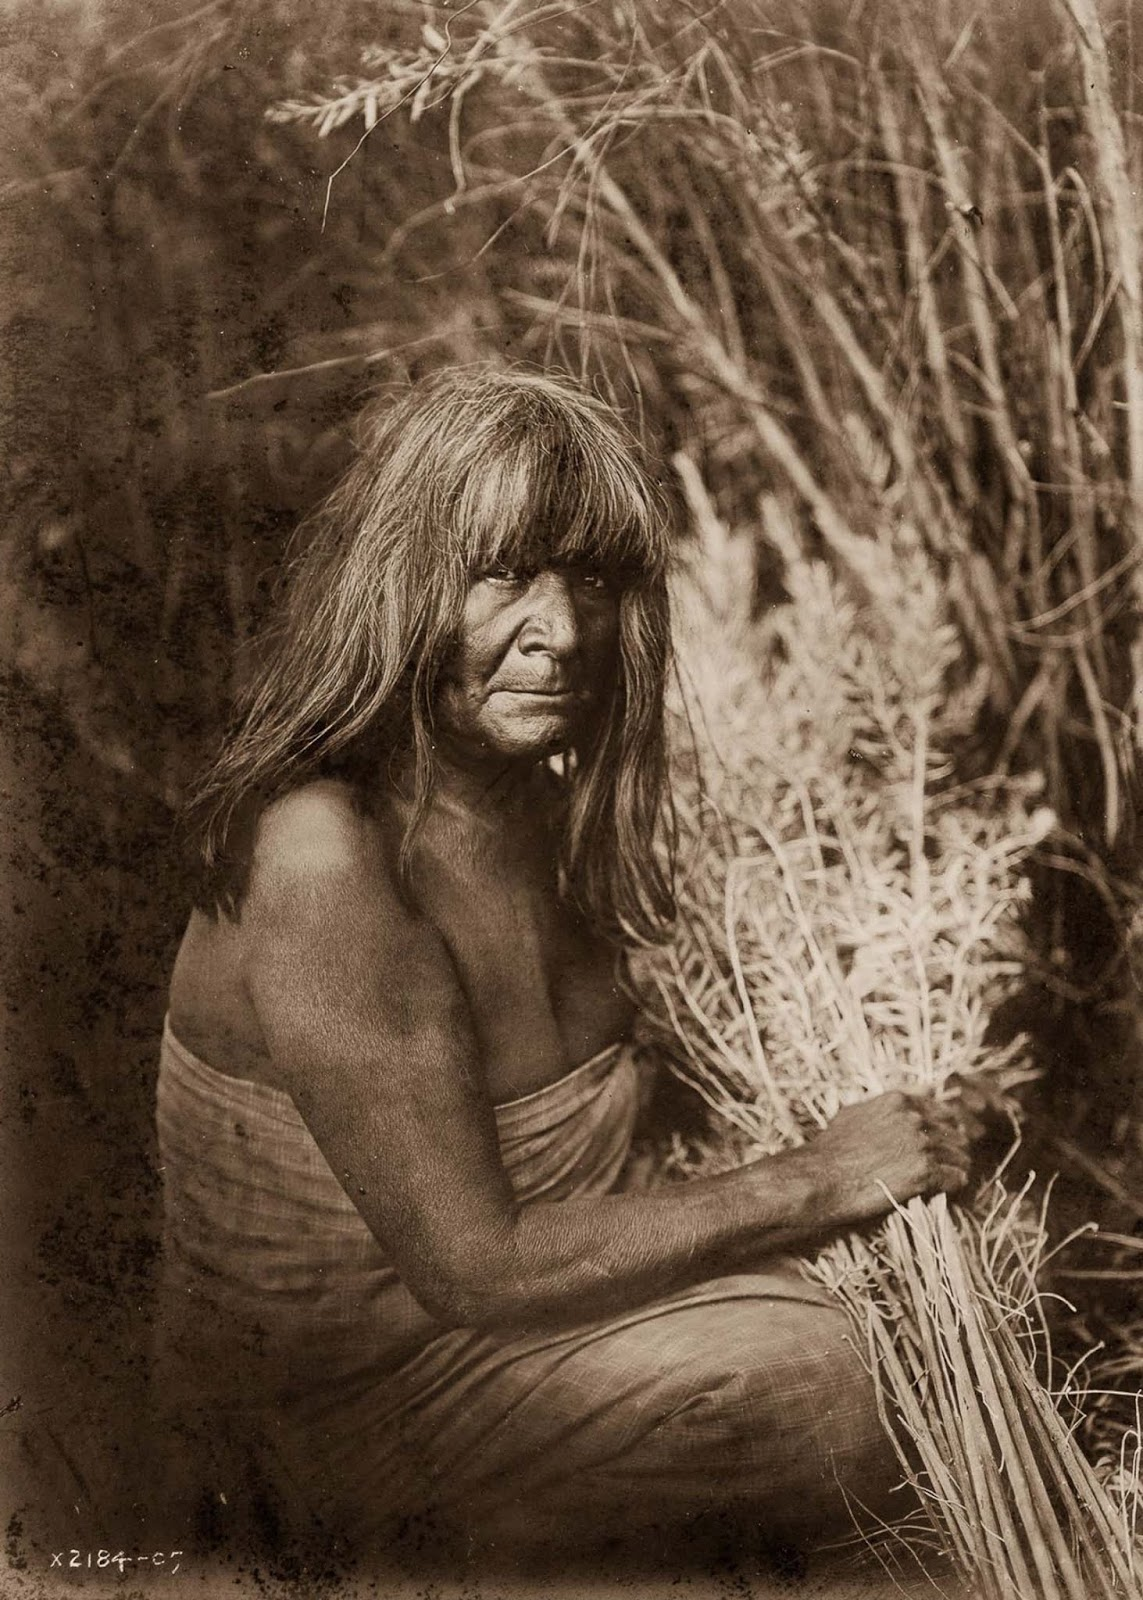 A Maricopa woman with arrow-brush stalks. 1907.